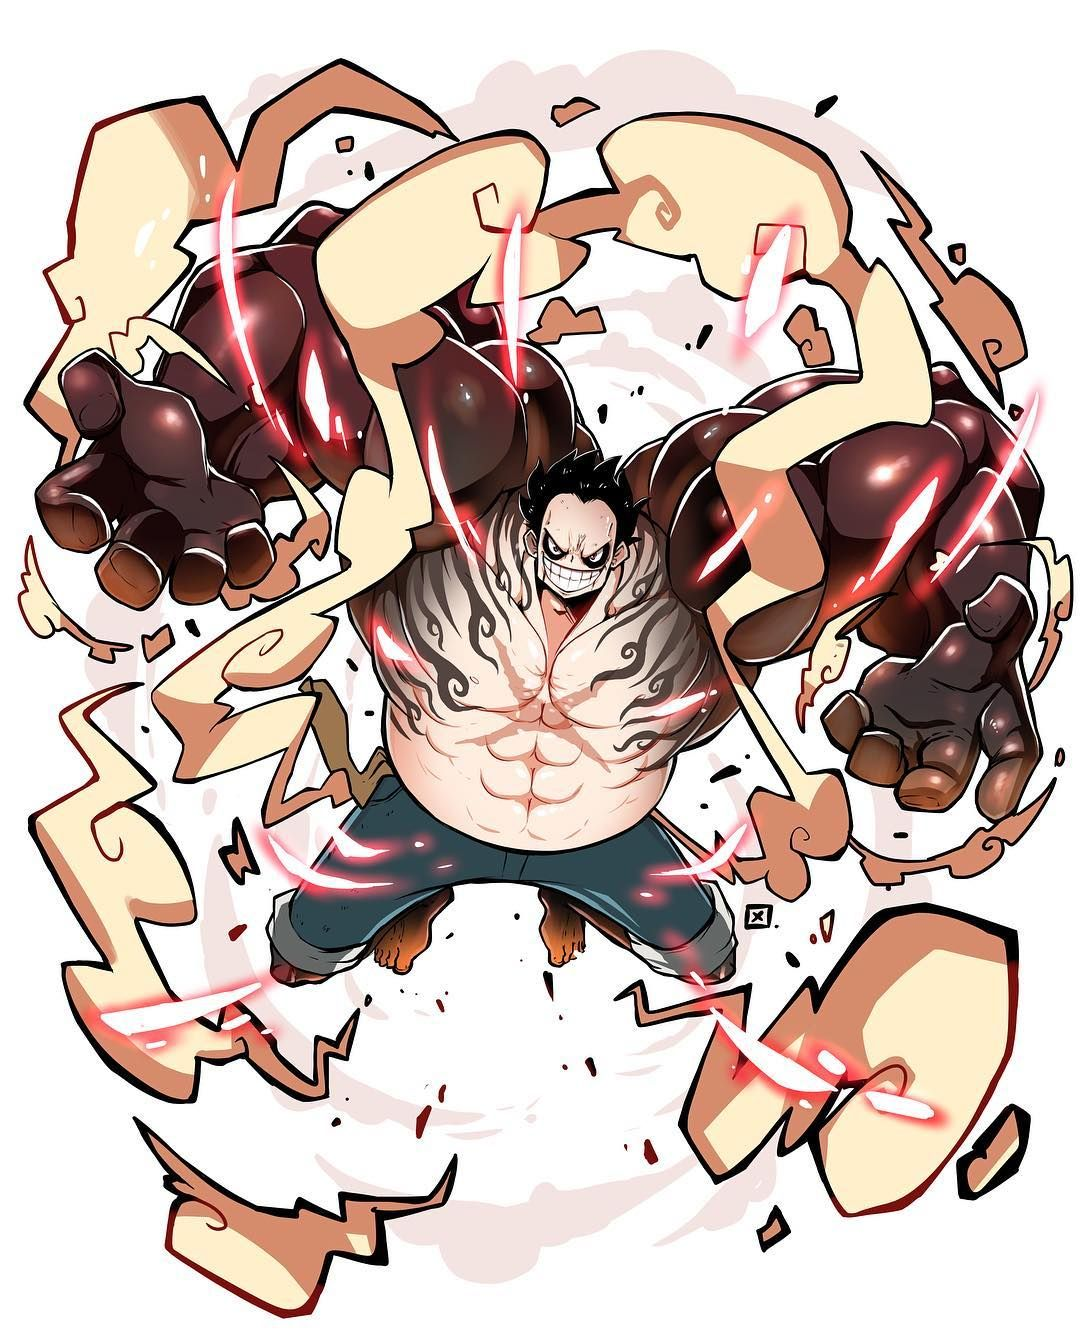 Aex Anime luffy gear 4!! 💪❌♥️❌💪♥️ this gear is the most badass